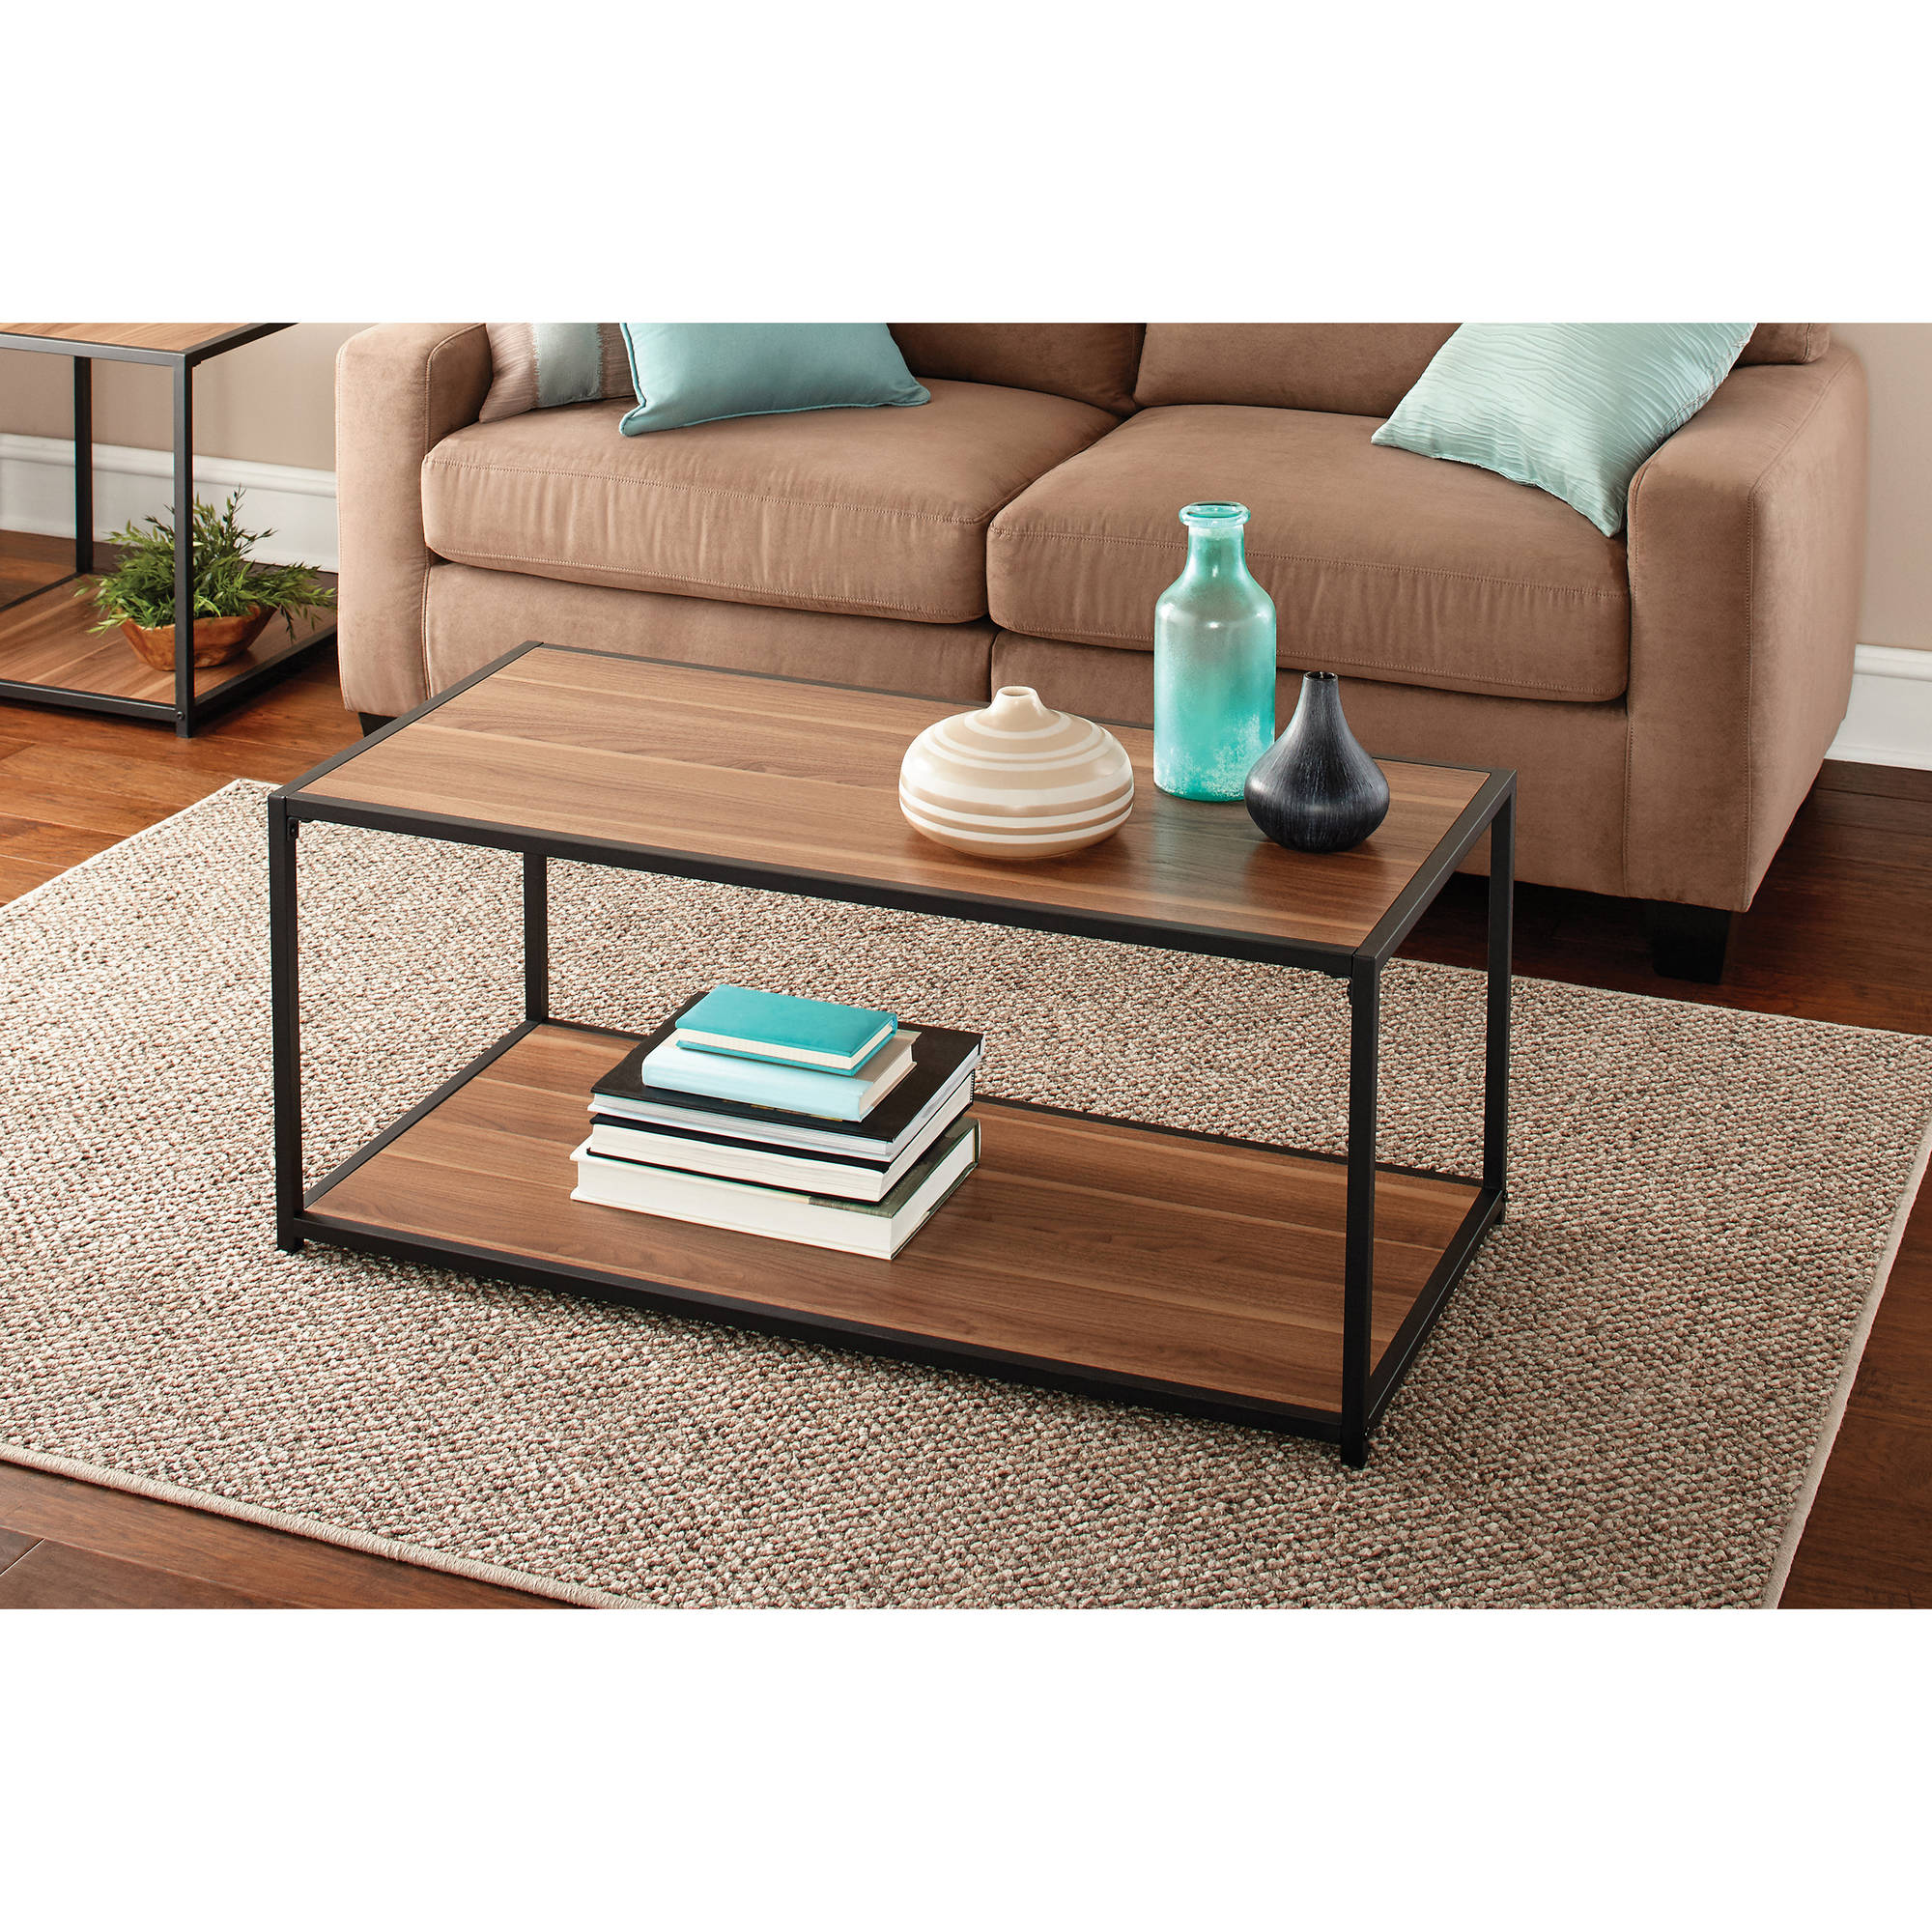 Mainstays Metro Coffee Table, Multiple Finishes